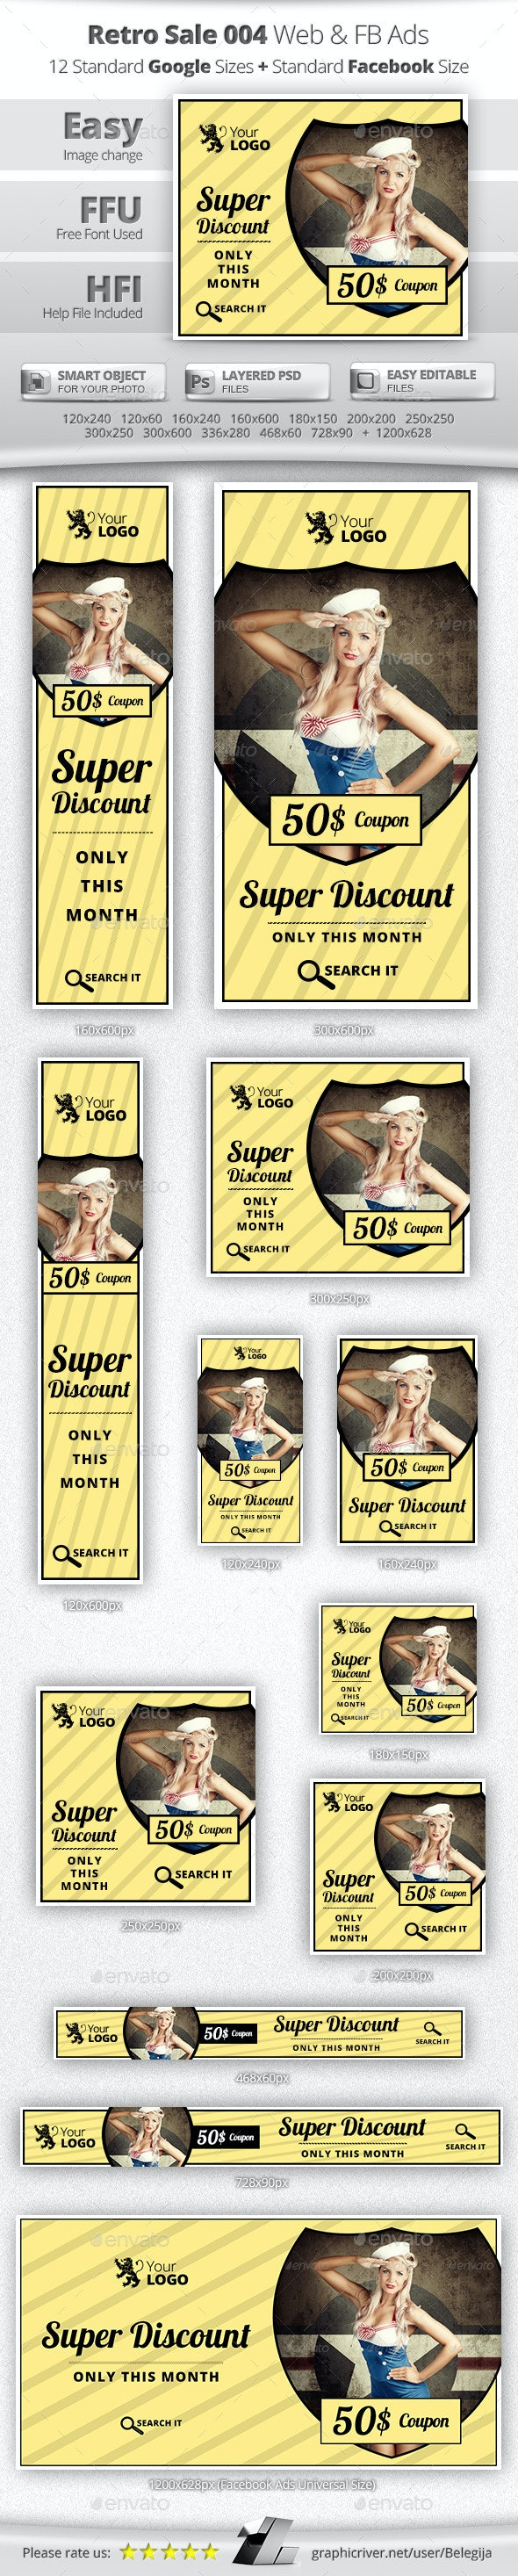 Retro Sale Web & Facebook Banners Ads - Banners & Ads Web Elements